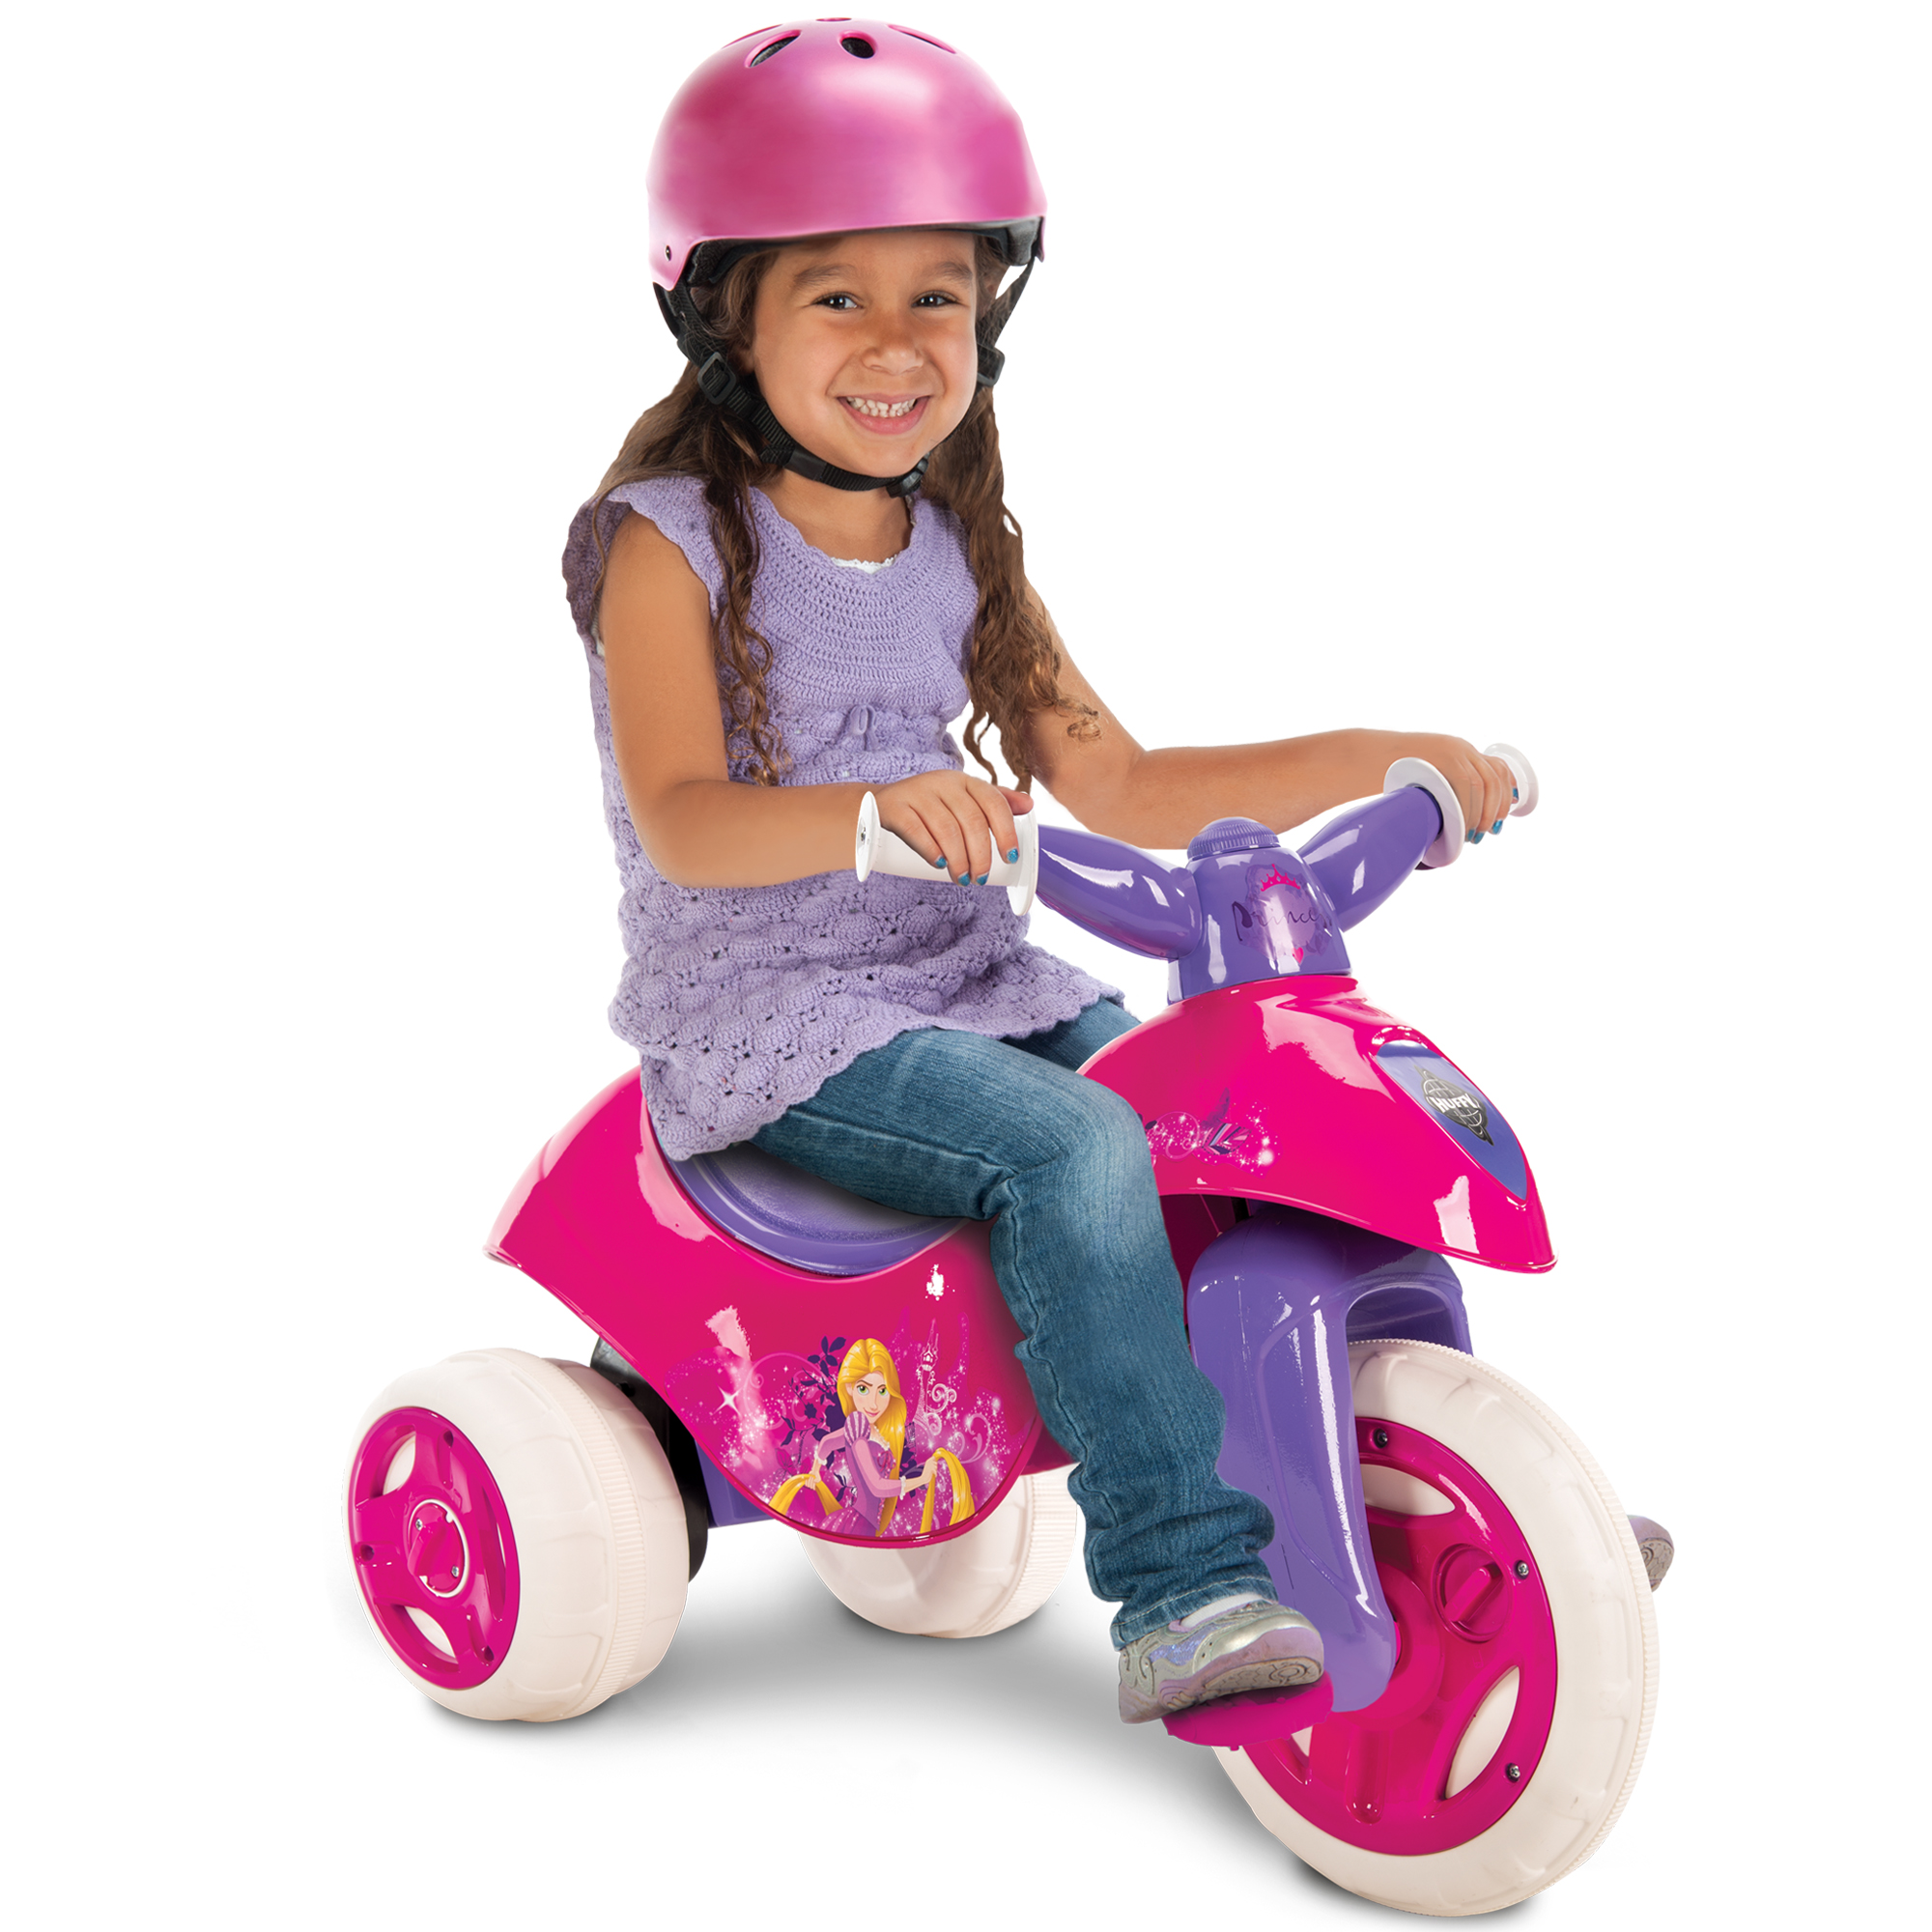 Disney Princess 6V Battery-Power Ride On Pink Tricycle, by Huffy